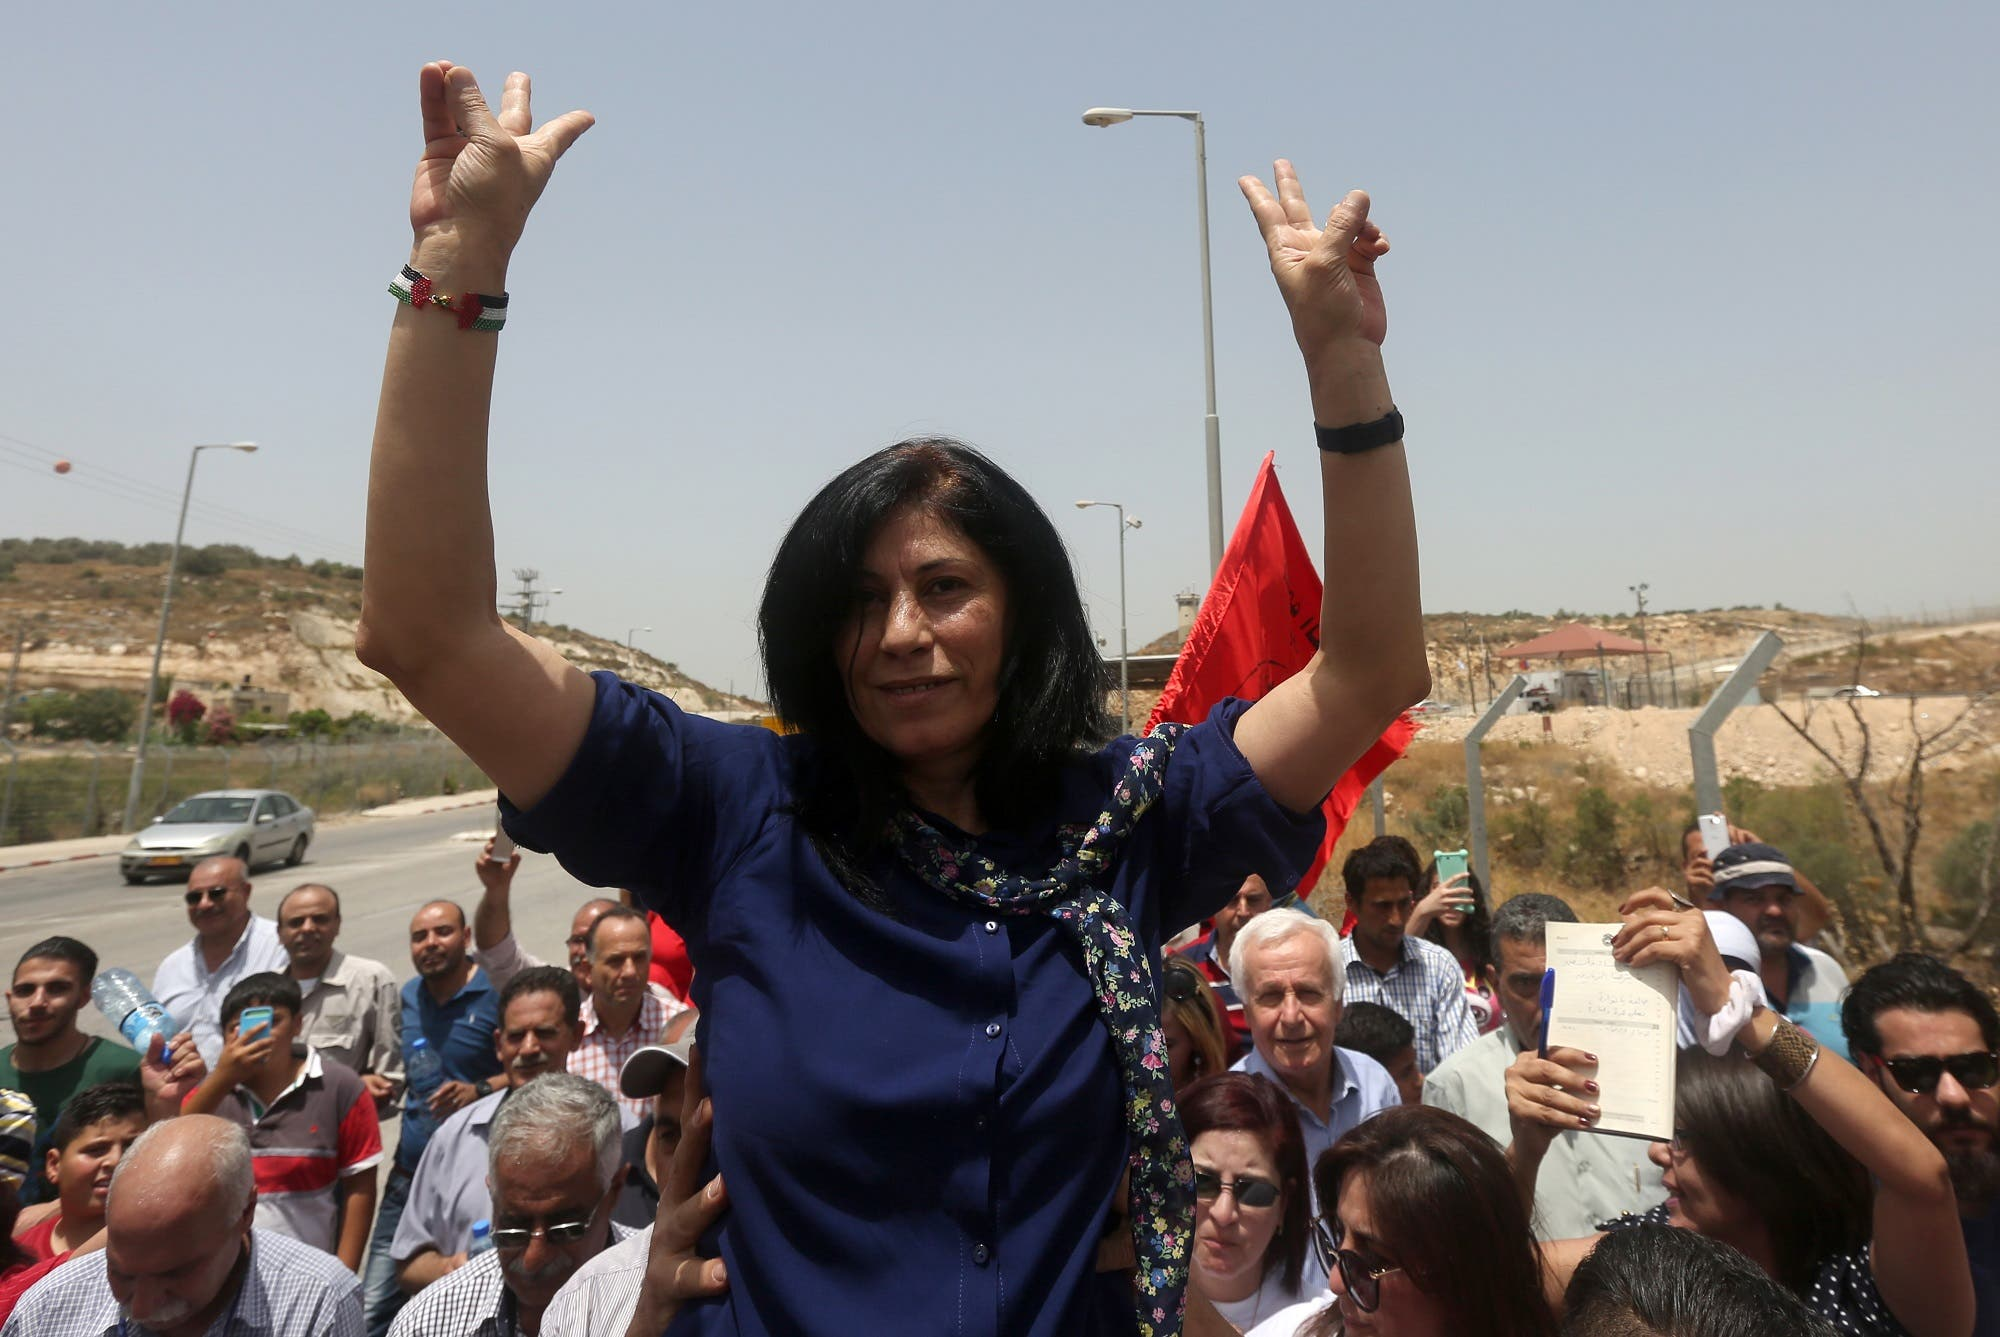 Khalida Jarrar flashes the sign for victory as she is lifted up by supporters at the Jubara checkpoint near the northern West Bank city of Tulkarem, following her release from an Israeli jail on June 3, 2016. (AFP)